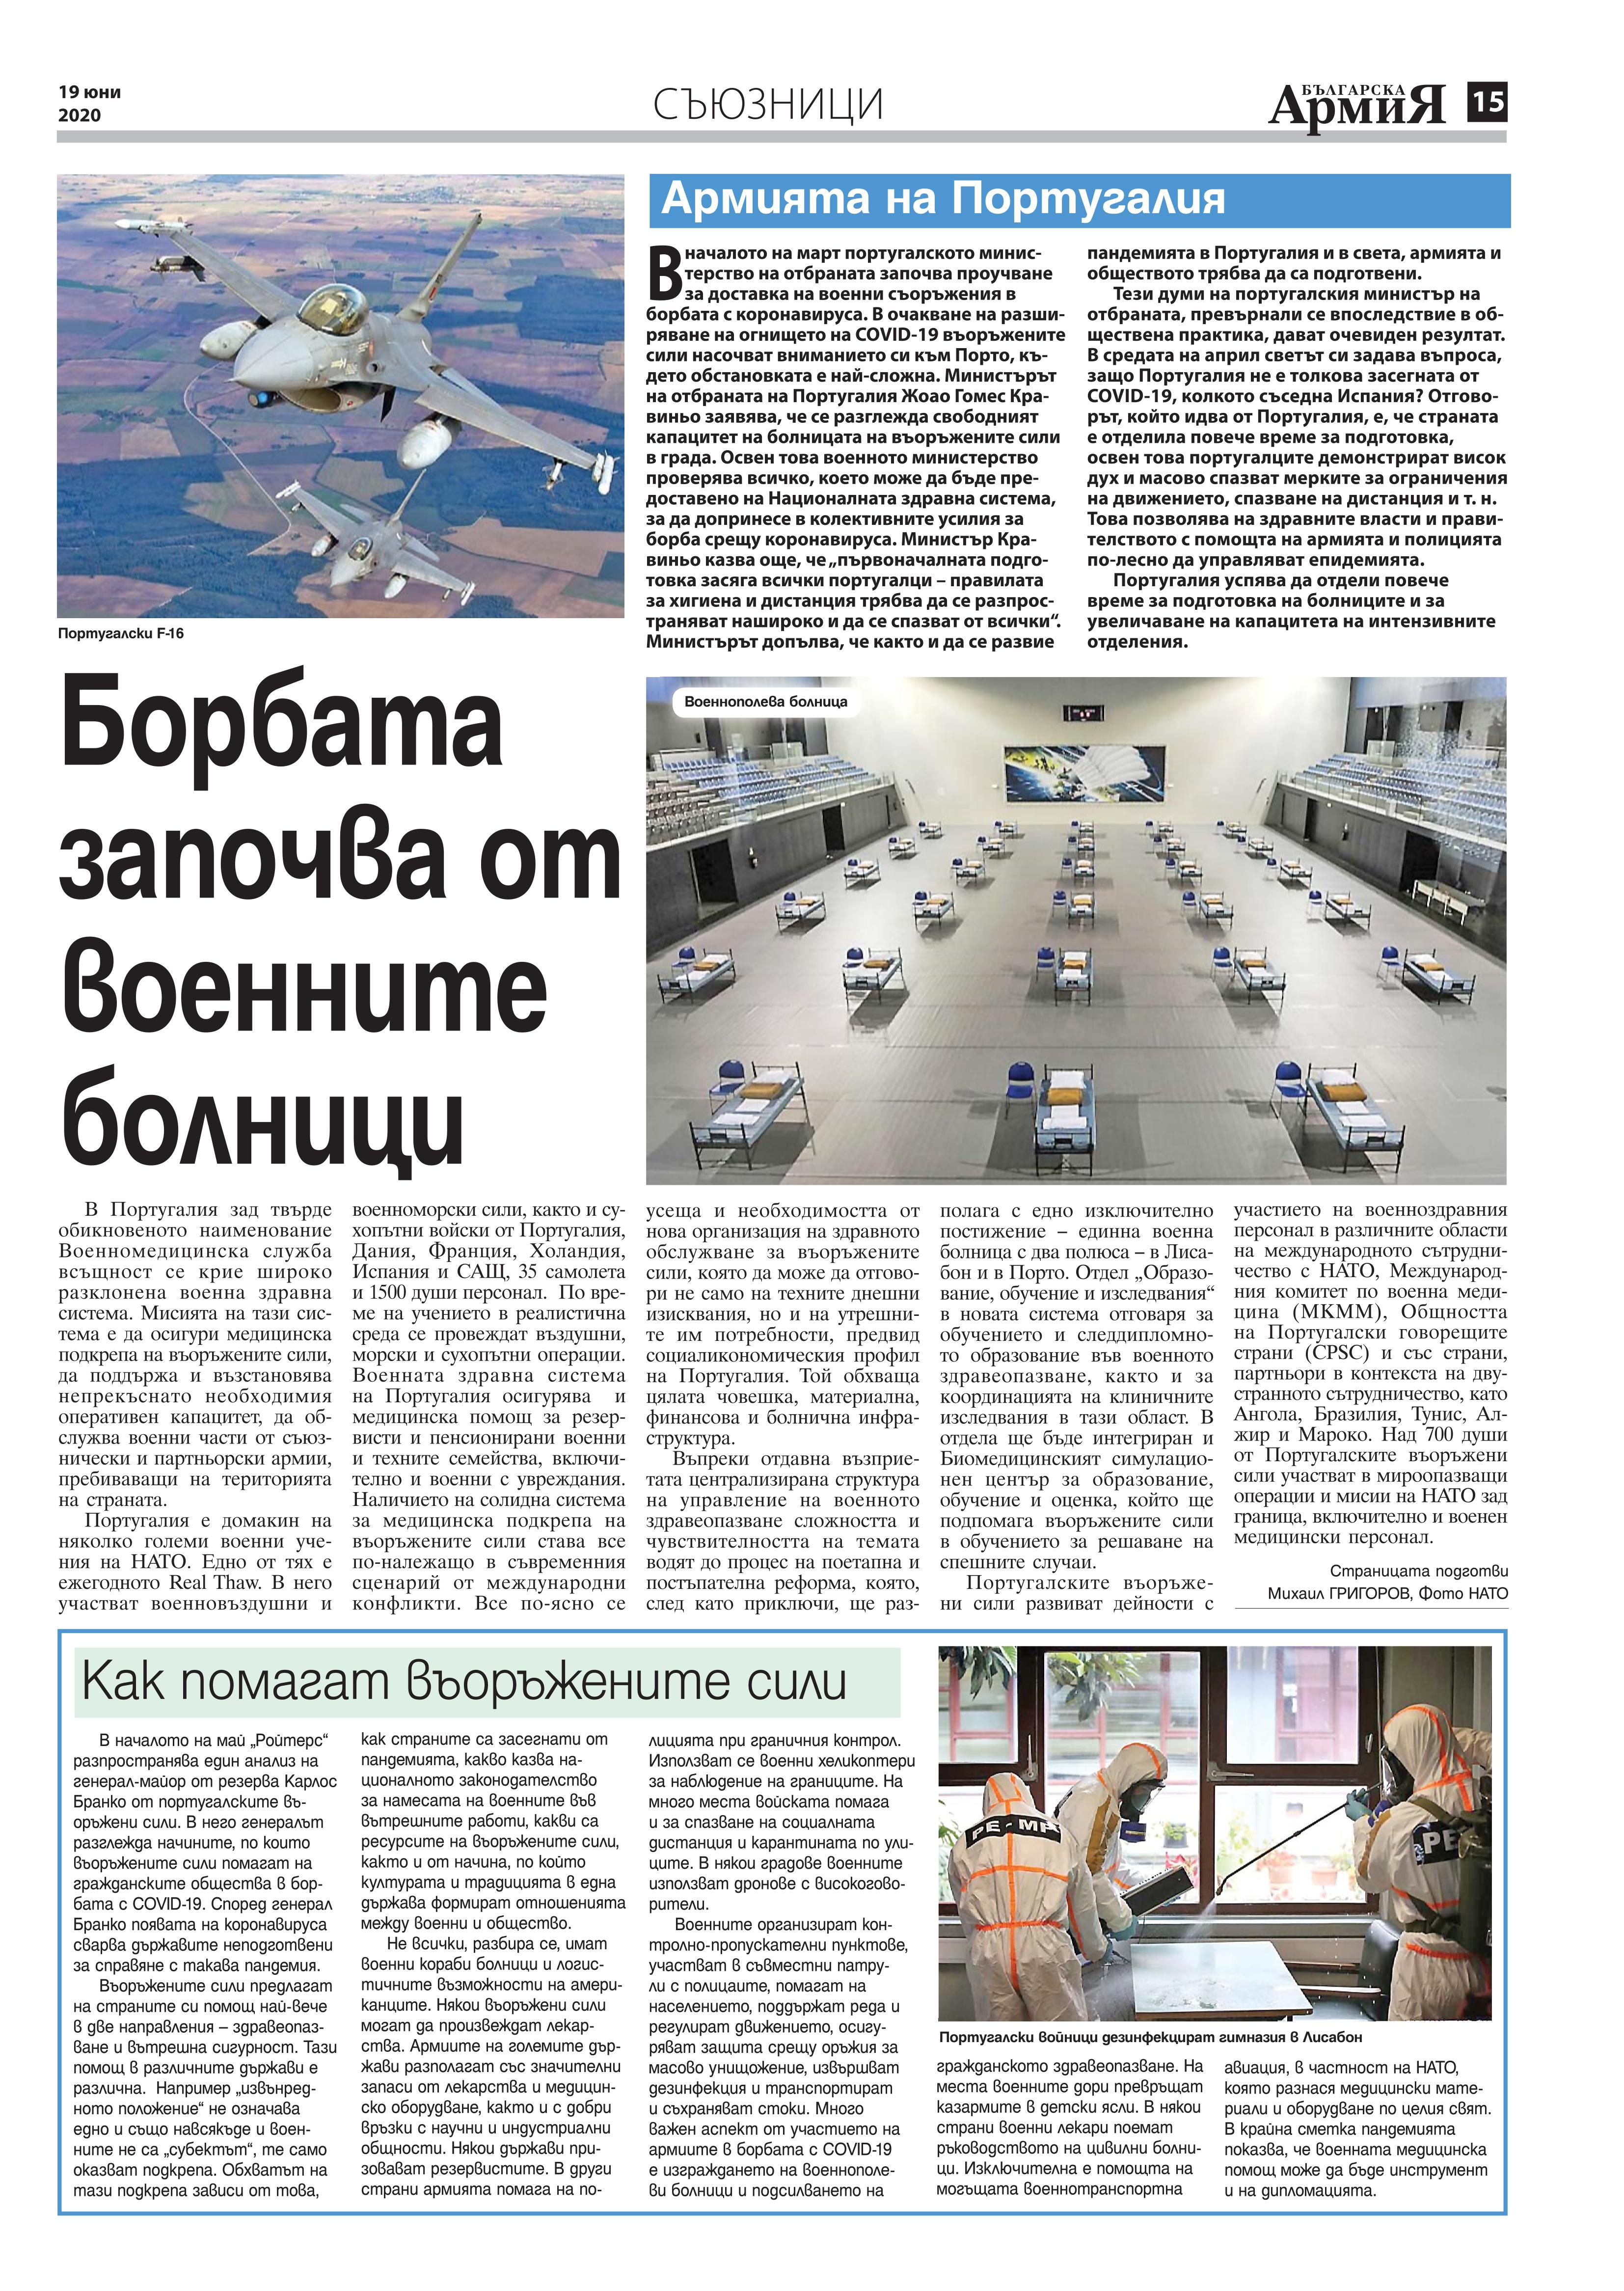 https://www.armymedia.bg/wp-content/uploads/2015/06/15.page1_-144.jpg